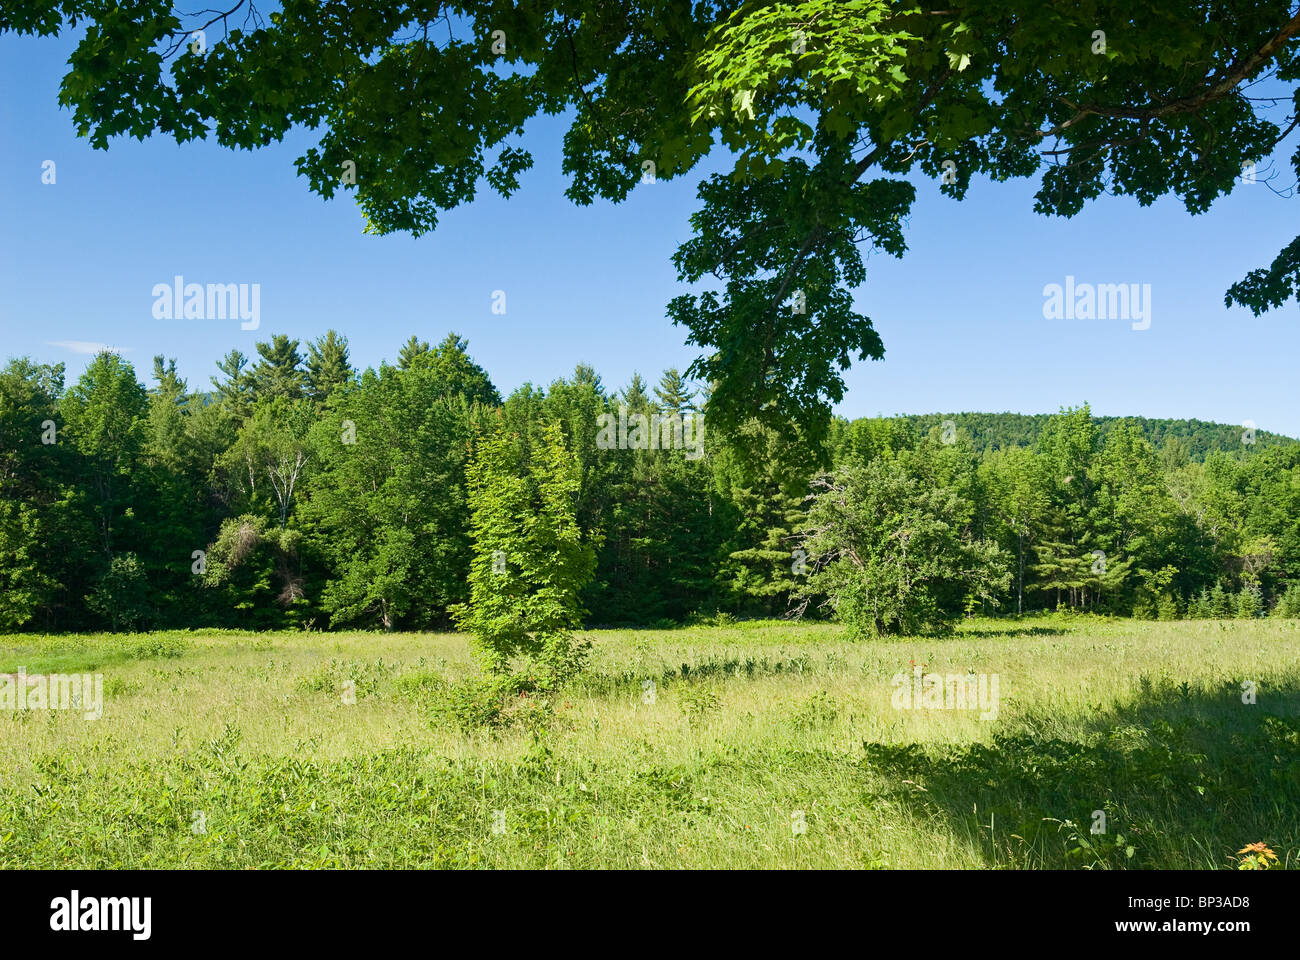 Green Field in Summer, New Hampshire. - Stock Image